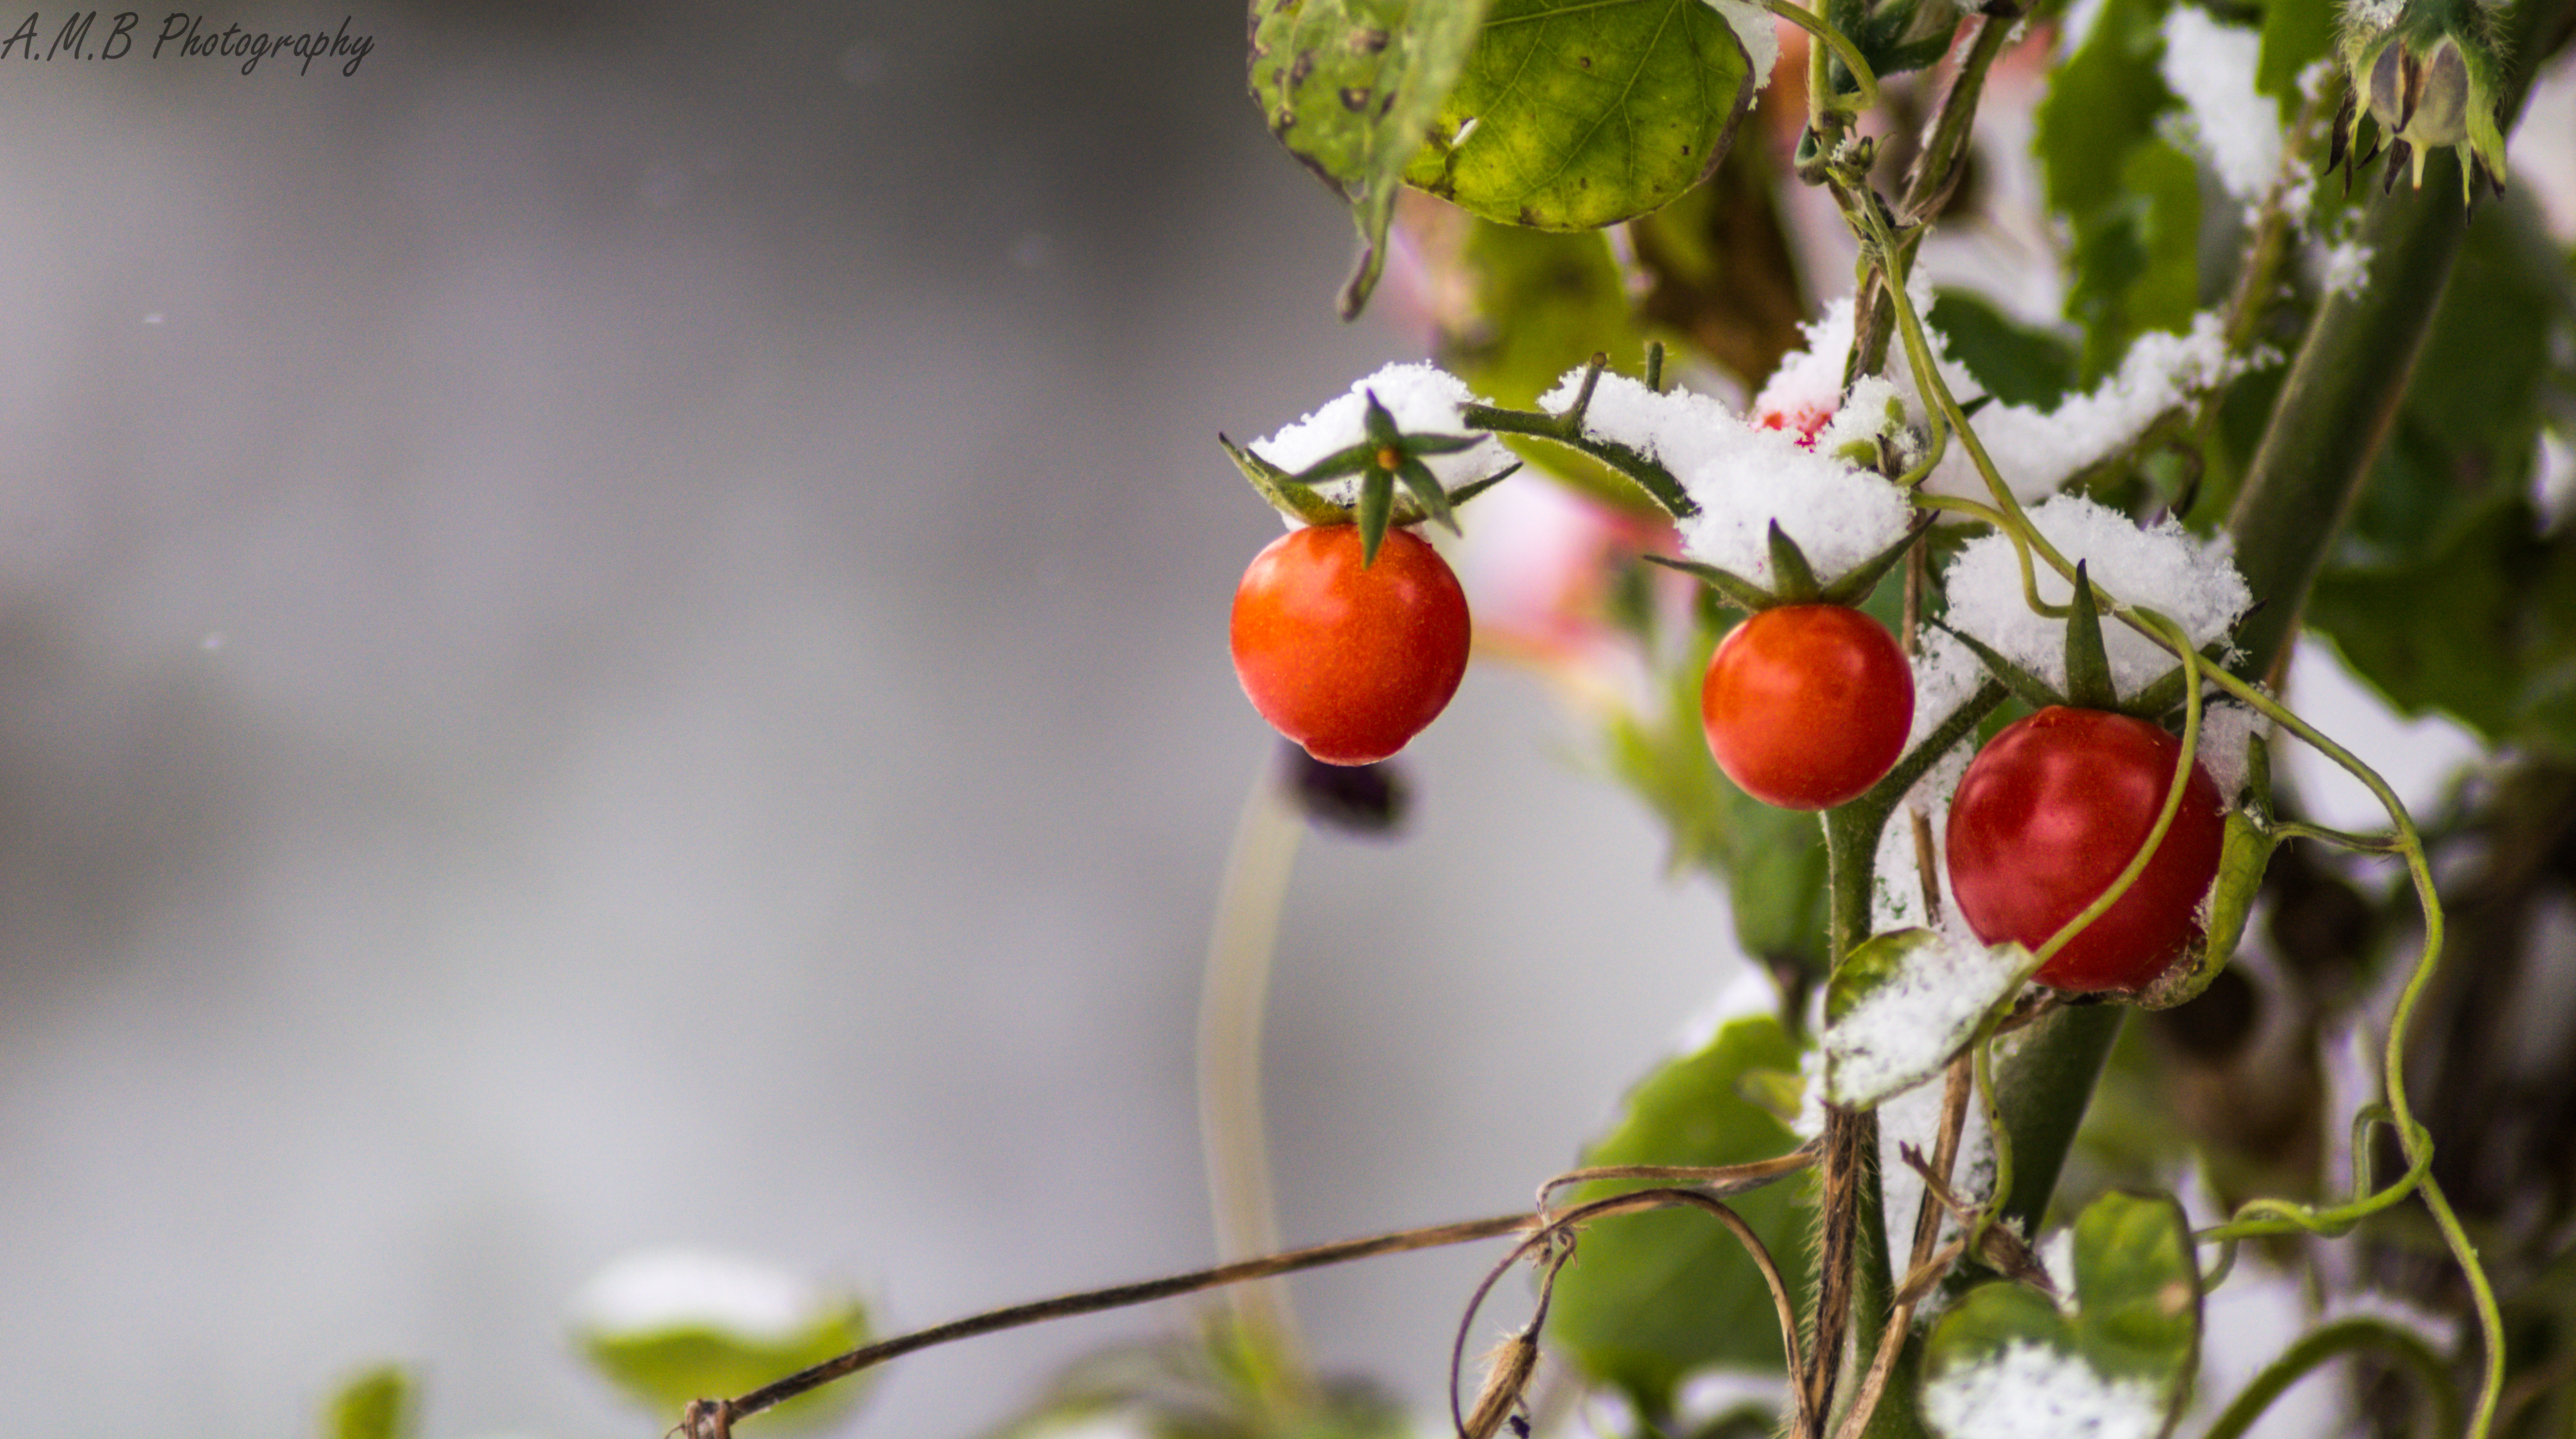 Snow Covered Tomatoes